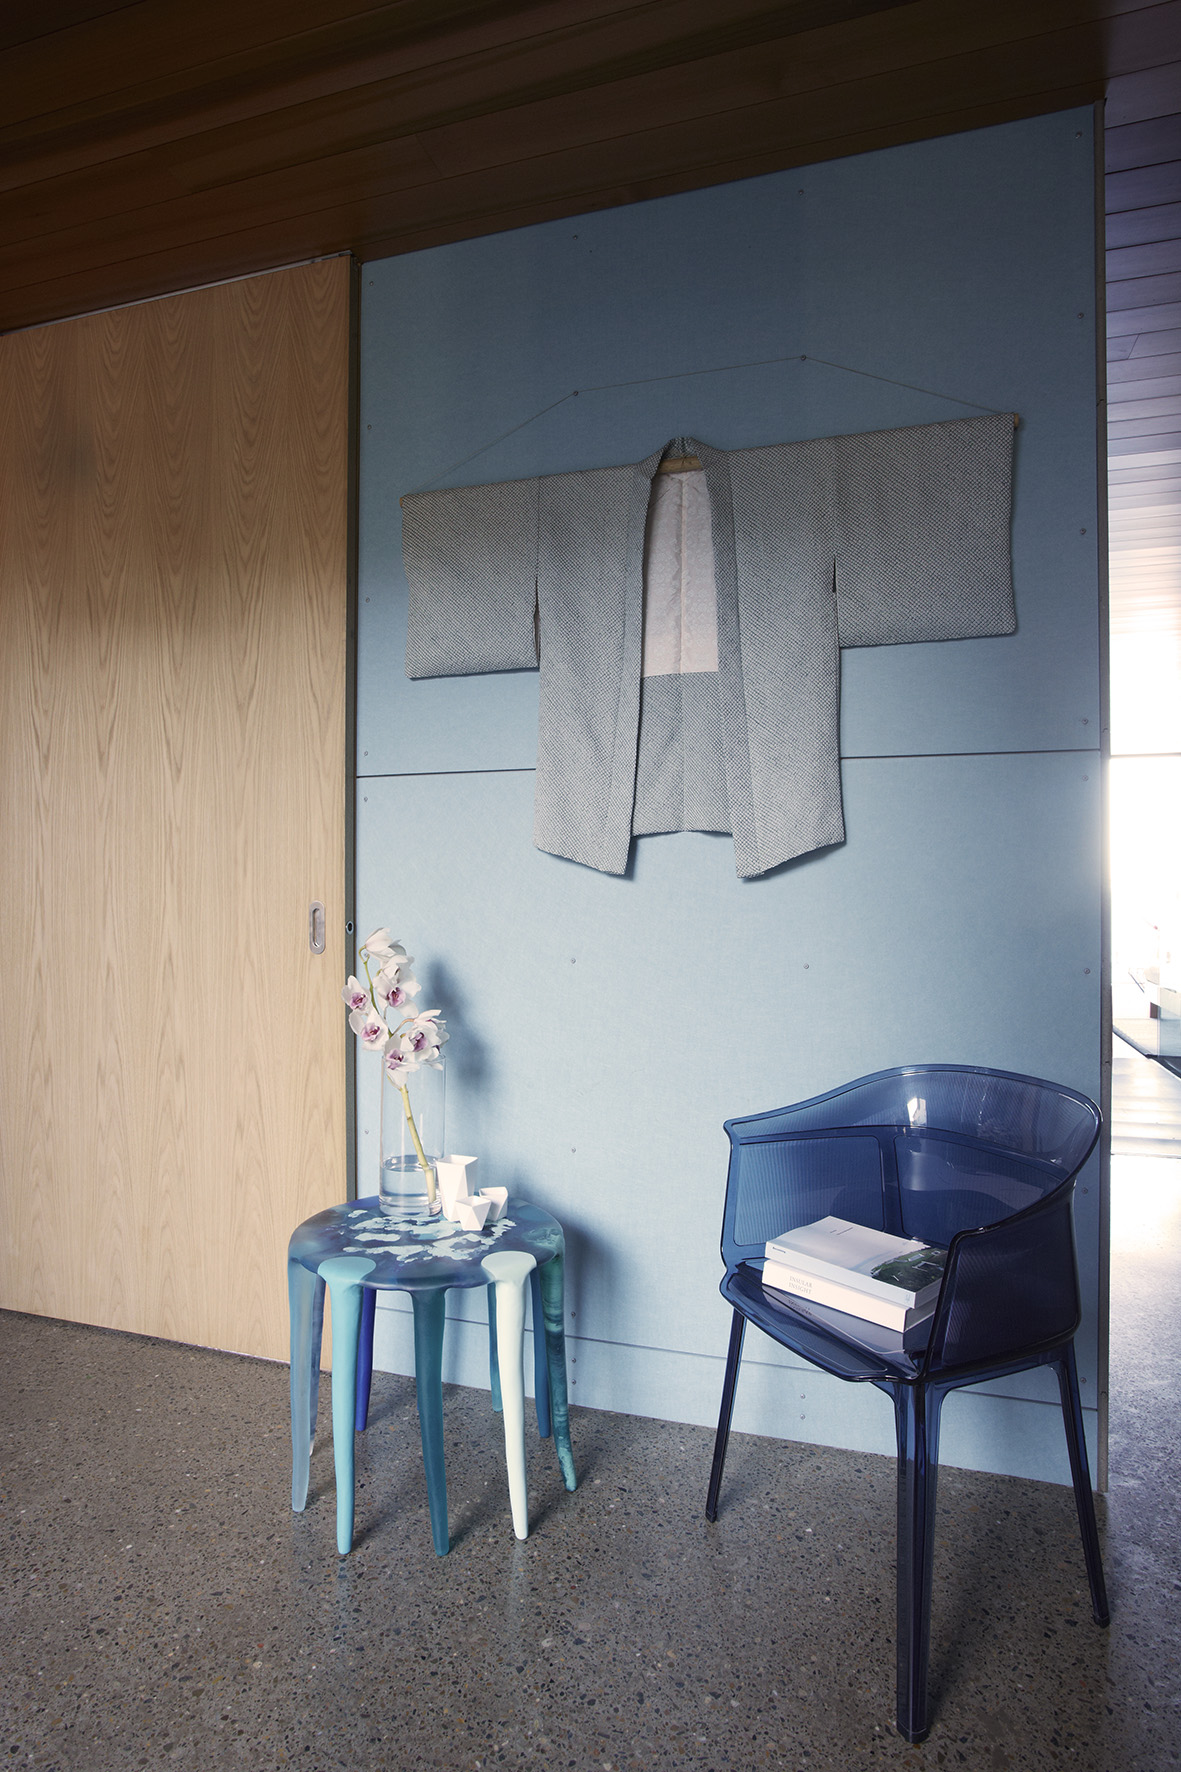 Zen interior design in blue